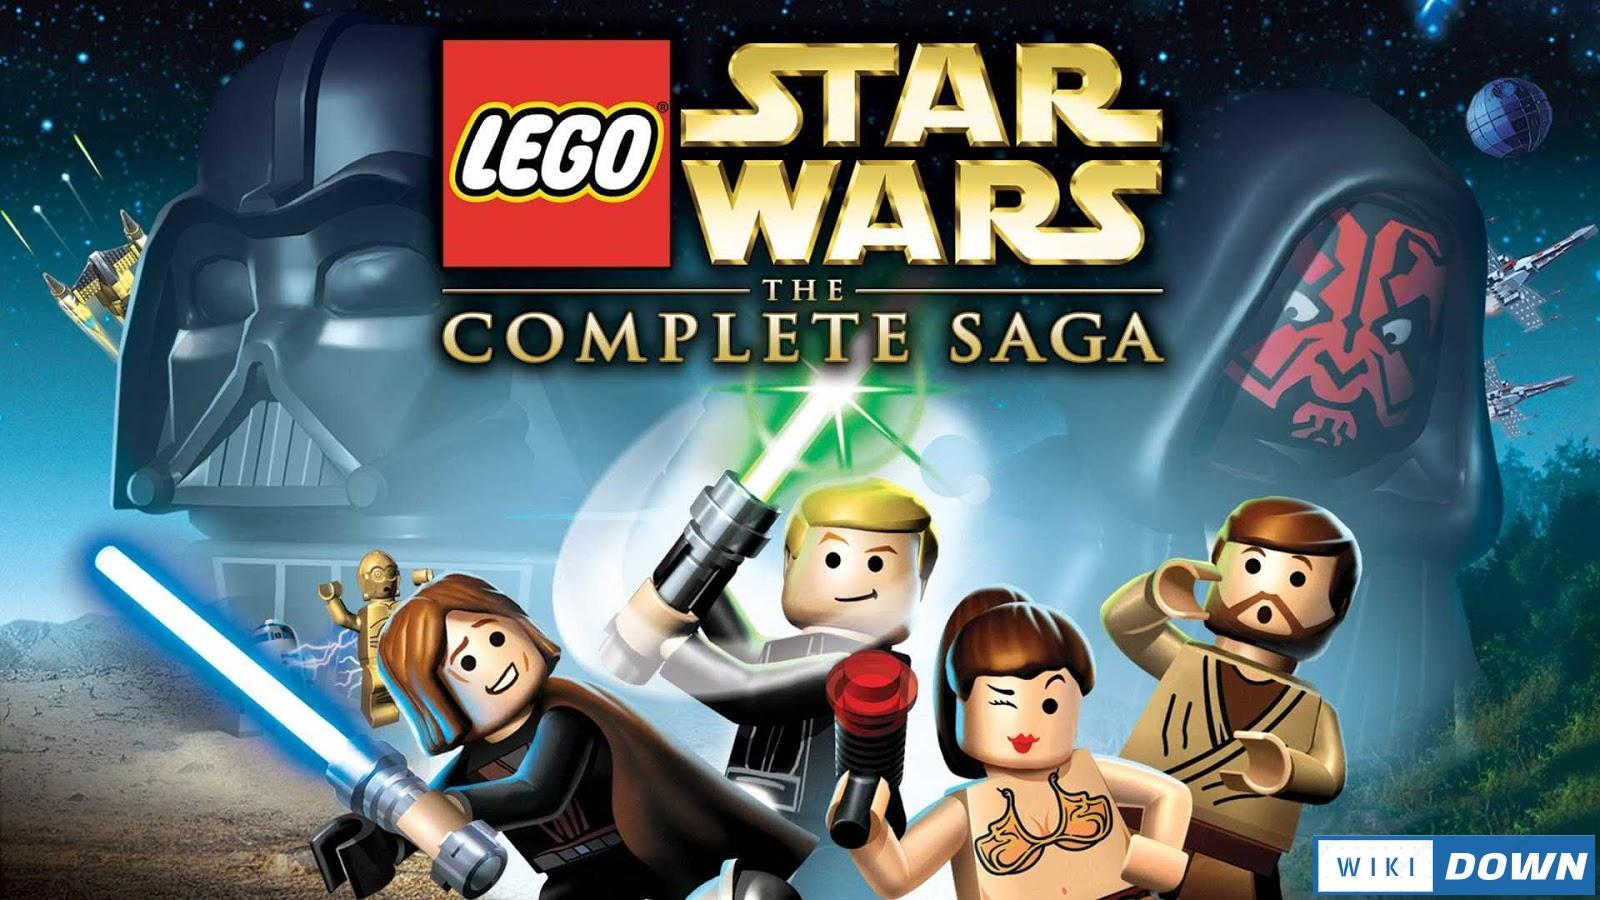 Download-LEGO-Star-Wars-The-Complete-Saga-Moi-Nhat